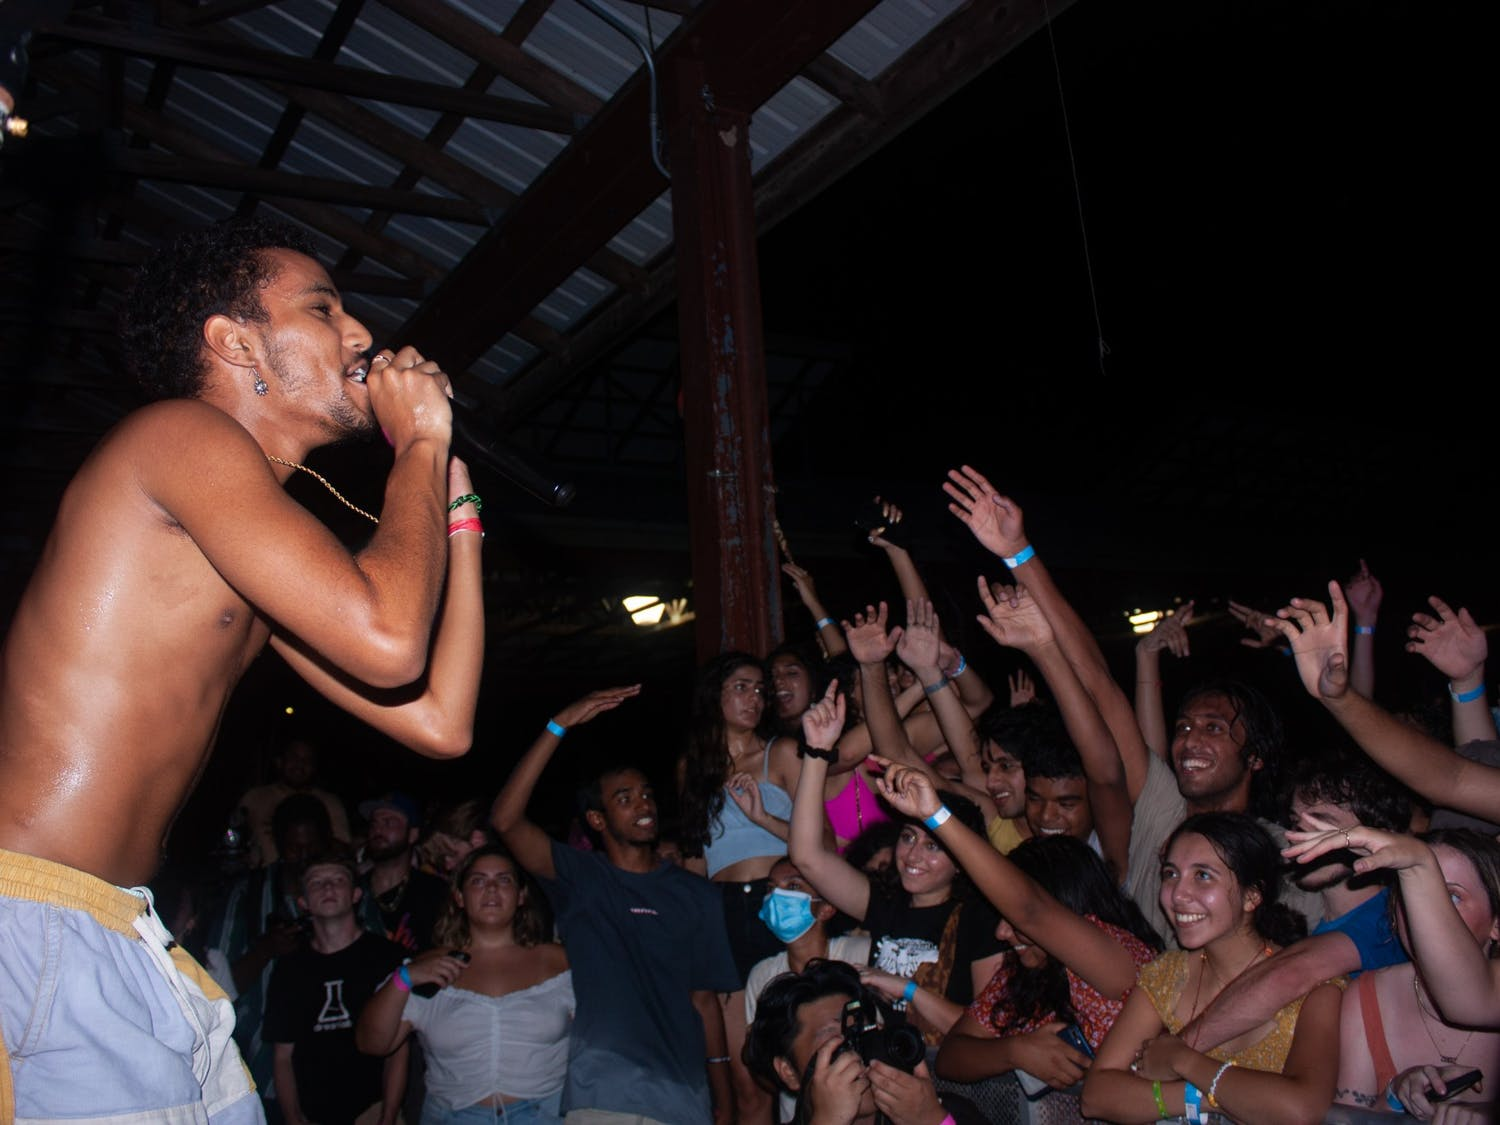 """""""{\""""blocks\"""":[{\""""key\"""":\""""eeh91\"""",\""""text\"""":\""""The Have U Heard Fest, held at Durham Central Park on Friday, Aug. 27, was a great success. Tickets to the festival were sold out two days prior to the festival\\u2019s opening. Have U Heard featured a variety of local artists and vendors, including students from UNC, N.C. State and Duke.\\nPerformers such as Ramsey the Fourth, Weston Estate and C19 made their debut at the festival. Lively maneuvers such as crowd surfing, spraying water and even throwing an entire sheet cake into the crowd kept audiences engaged. \"""",\""""type\"""":\""""unstyled\"""",\""""depth\"""":0,\""""inlineStyleRanges\"""":[],\""""entityRanges\"""":[],\""""data\"""":[]}],\""""entityMap\"""":[]}"""""""